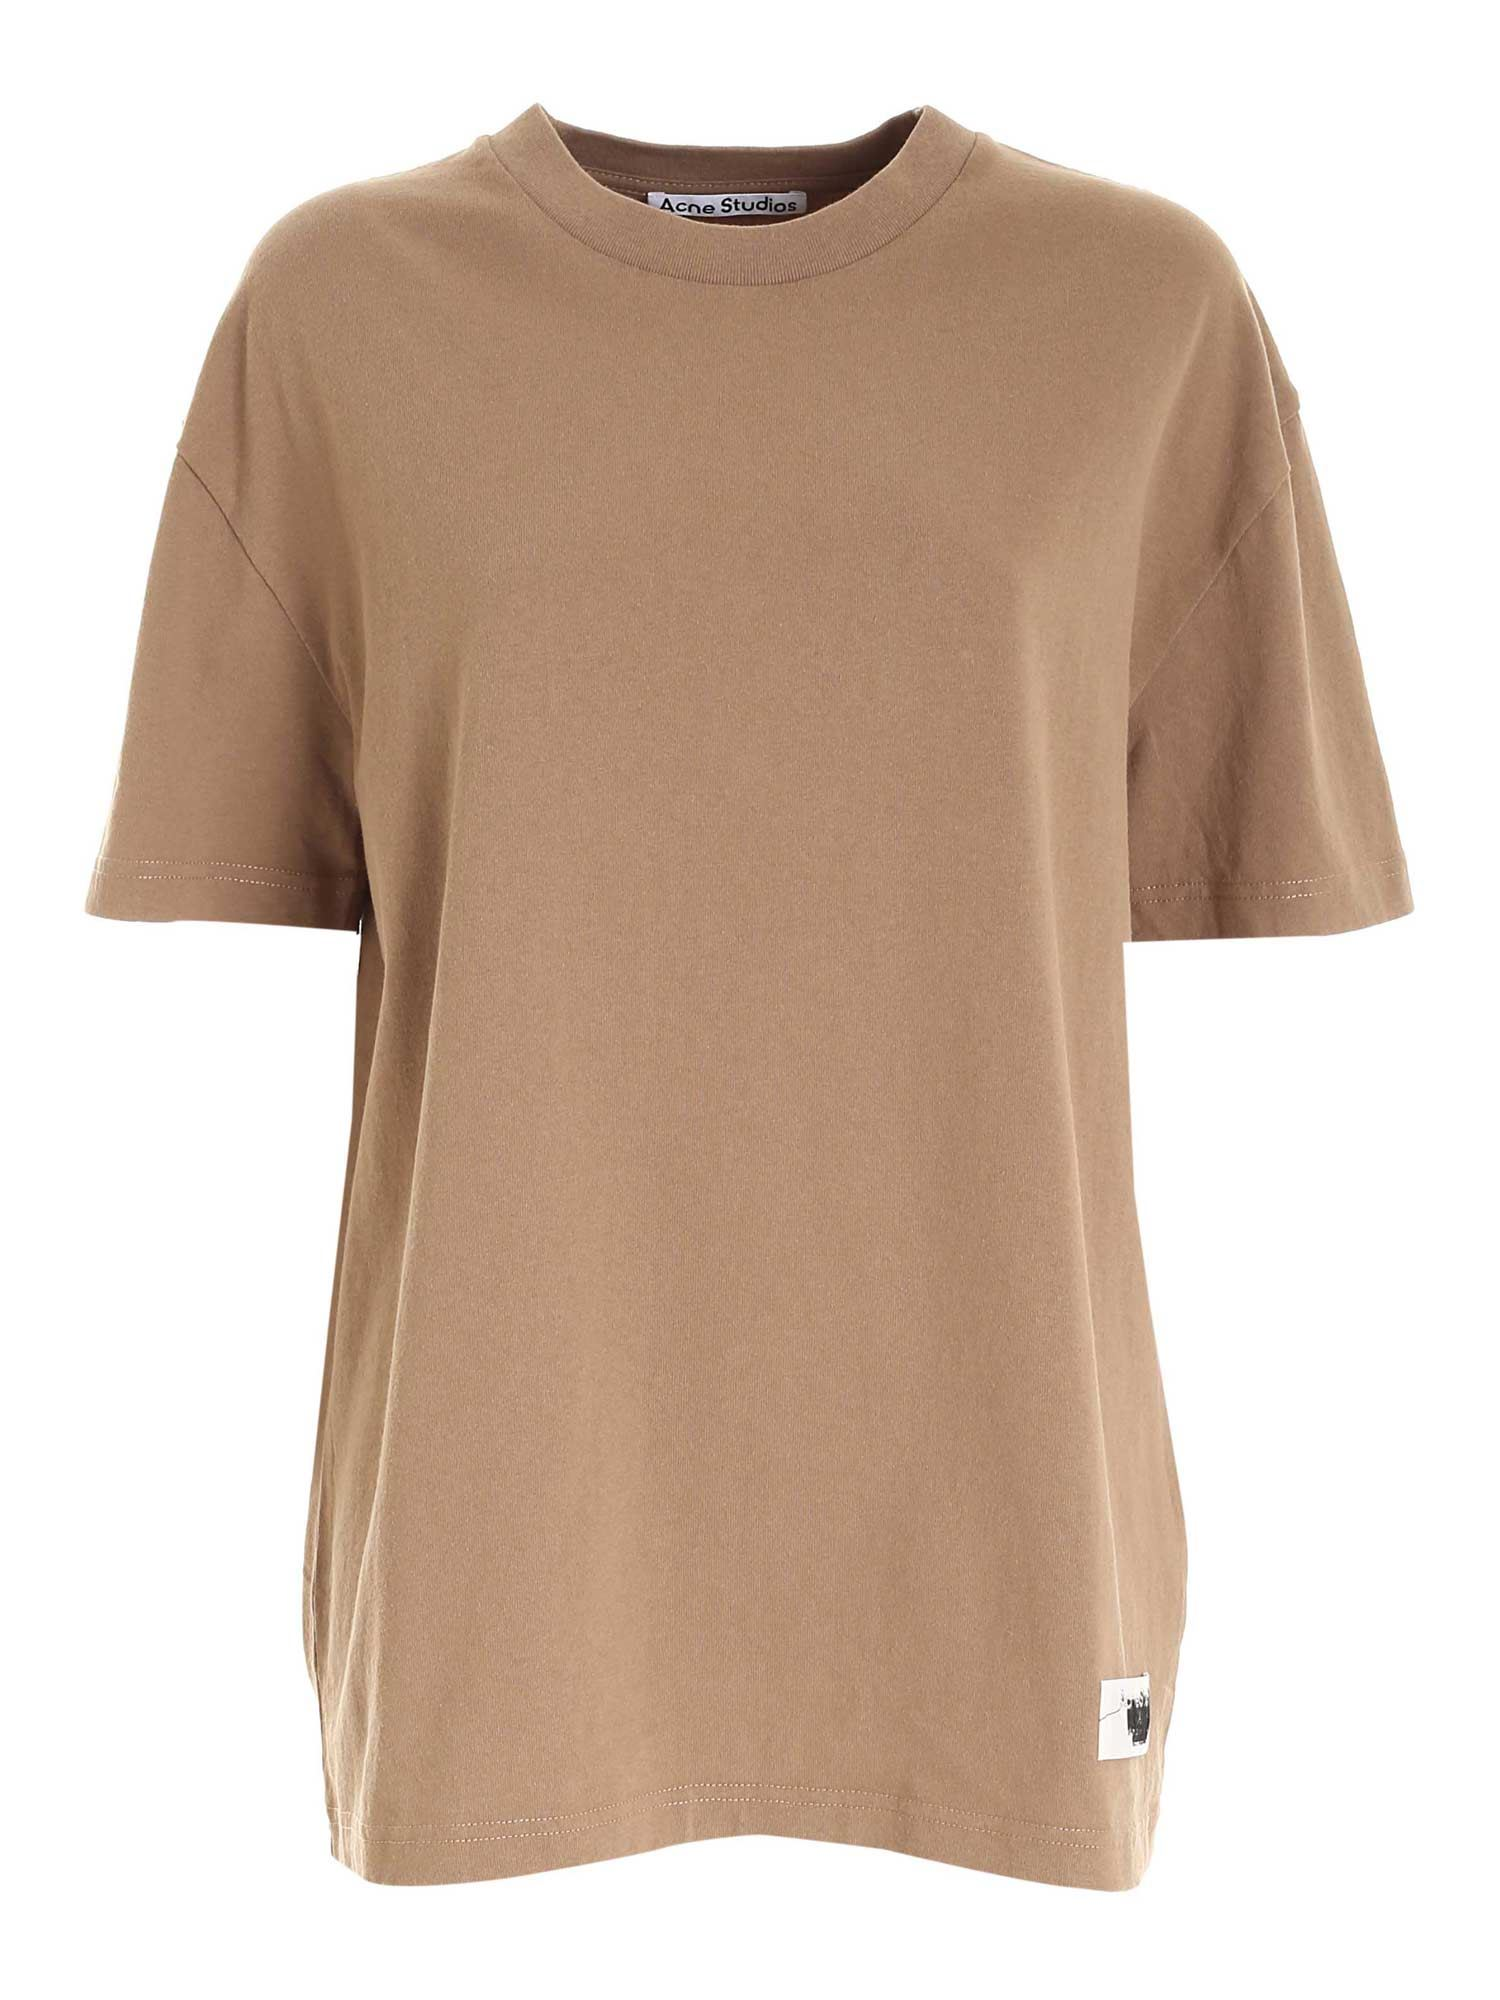 Acne Studios LOGO LABEL T-SHIRT IN BROWN